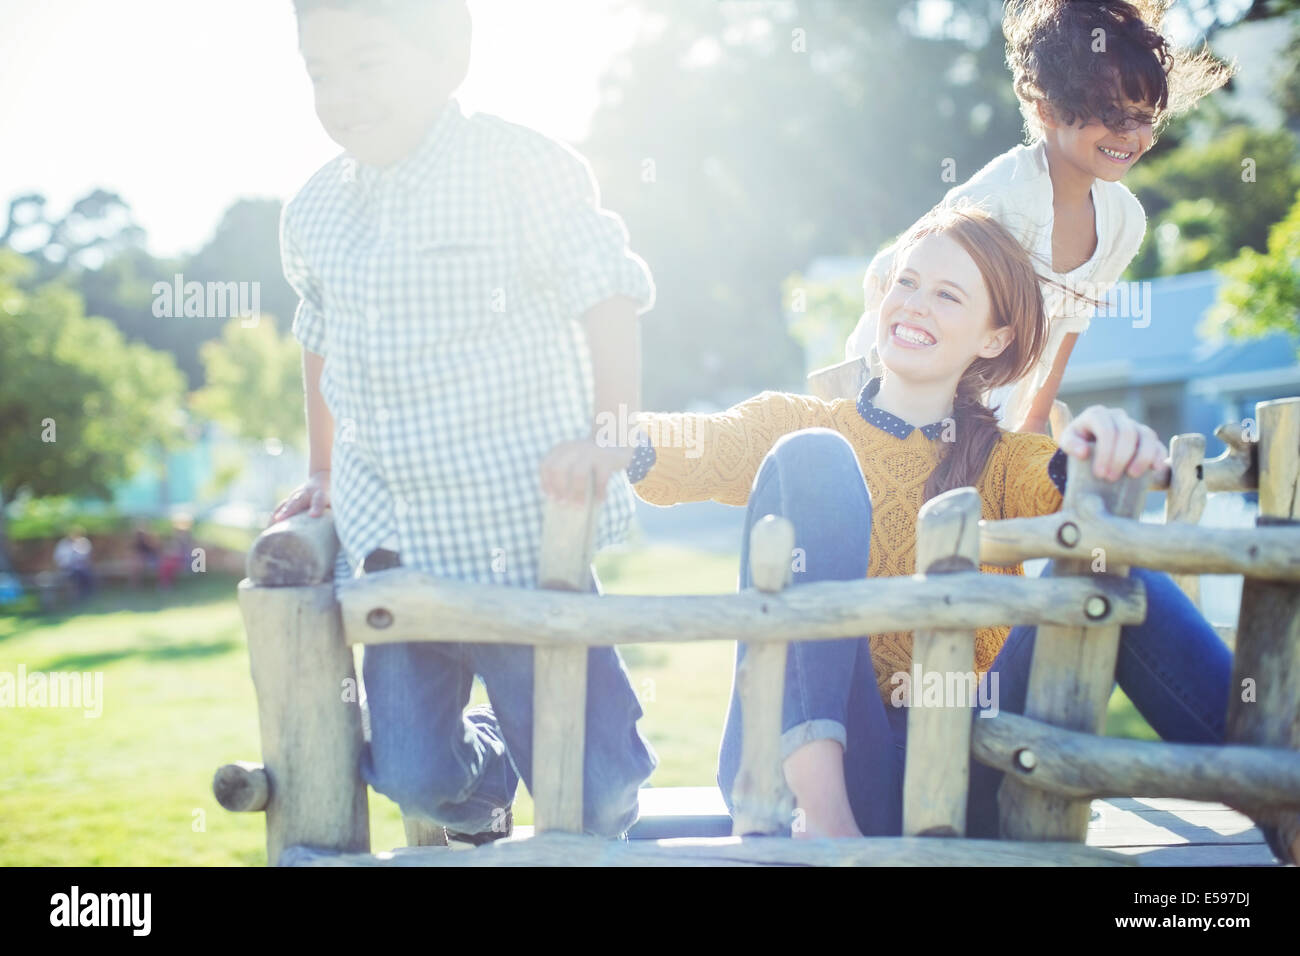 Babysitter and children playing outdoors - Stock Image